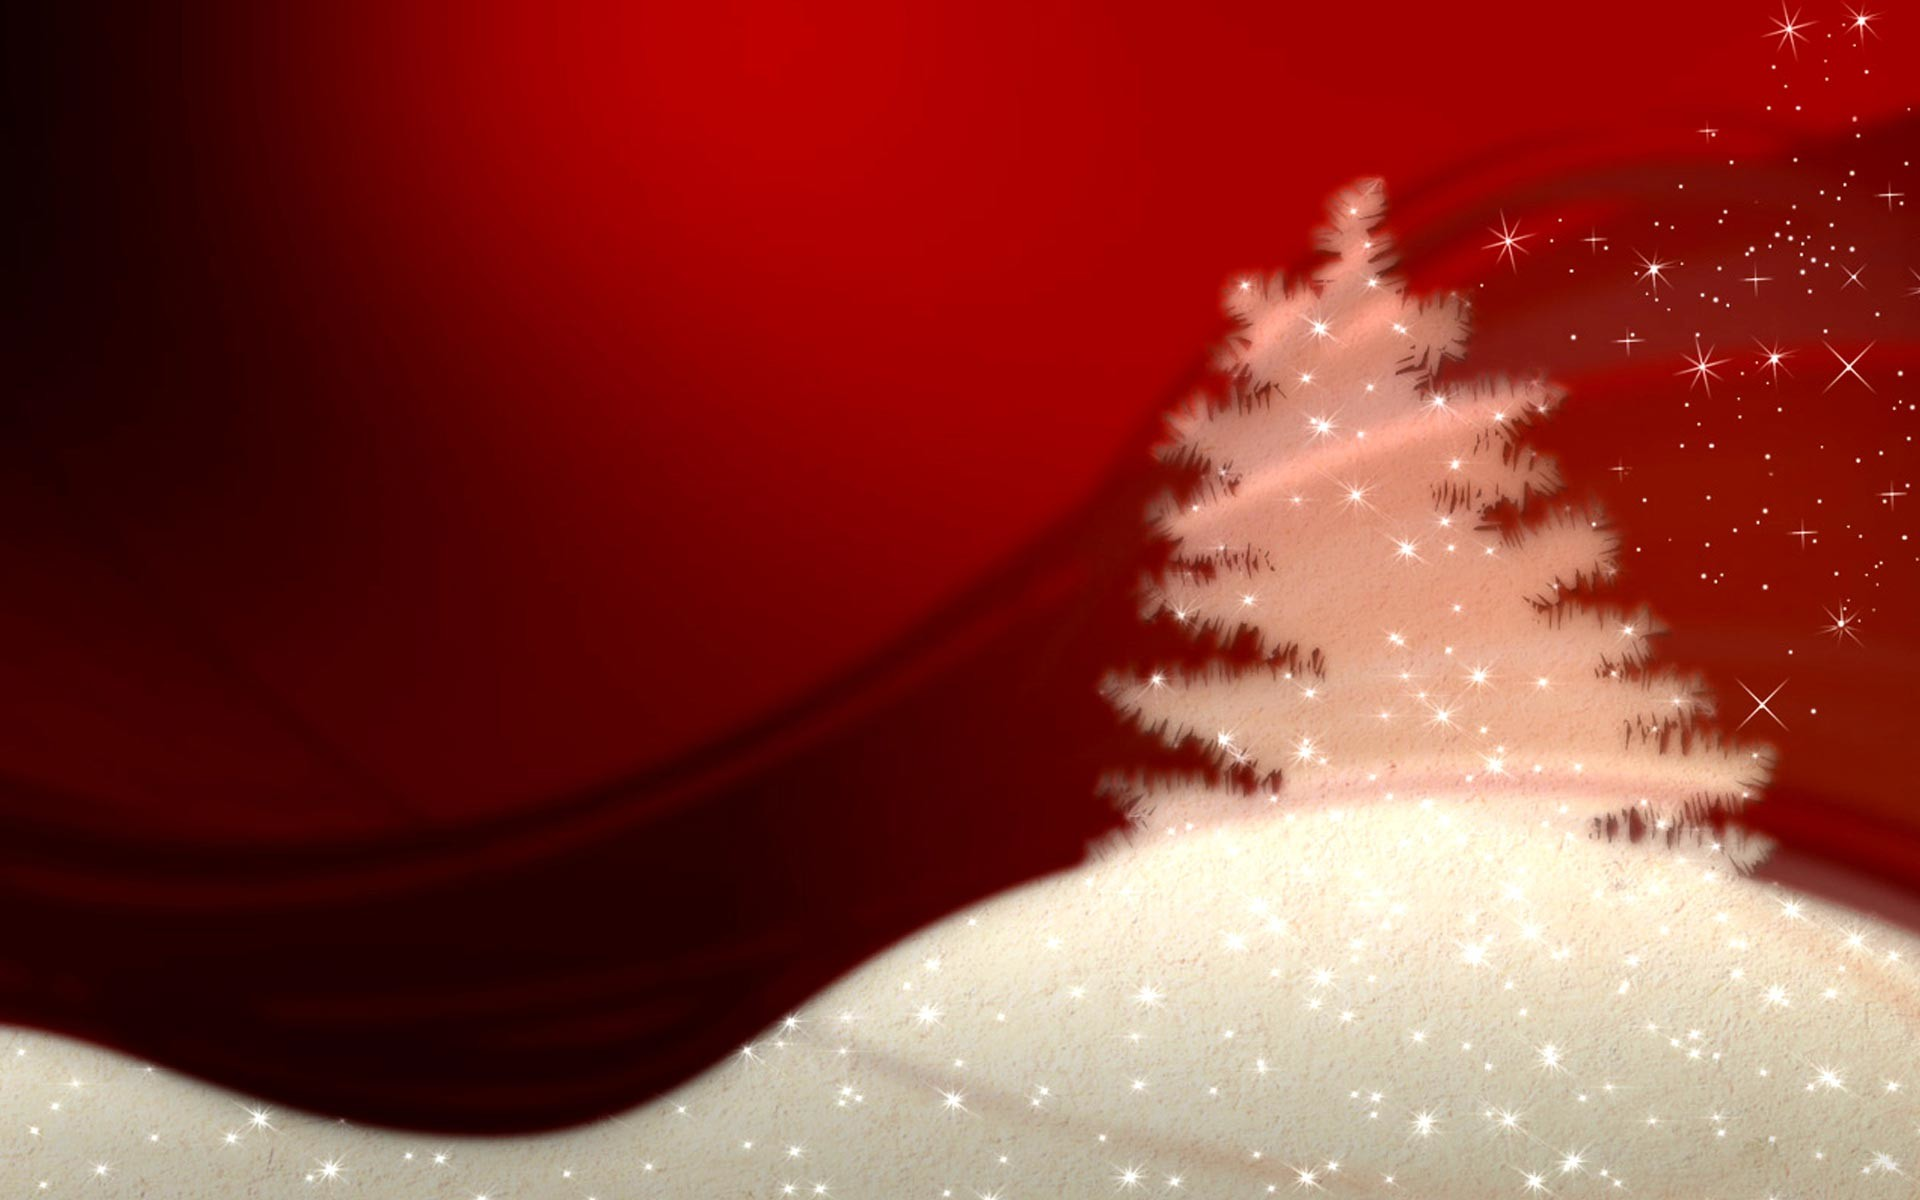 christmas pictures for desktop background (65+ images)